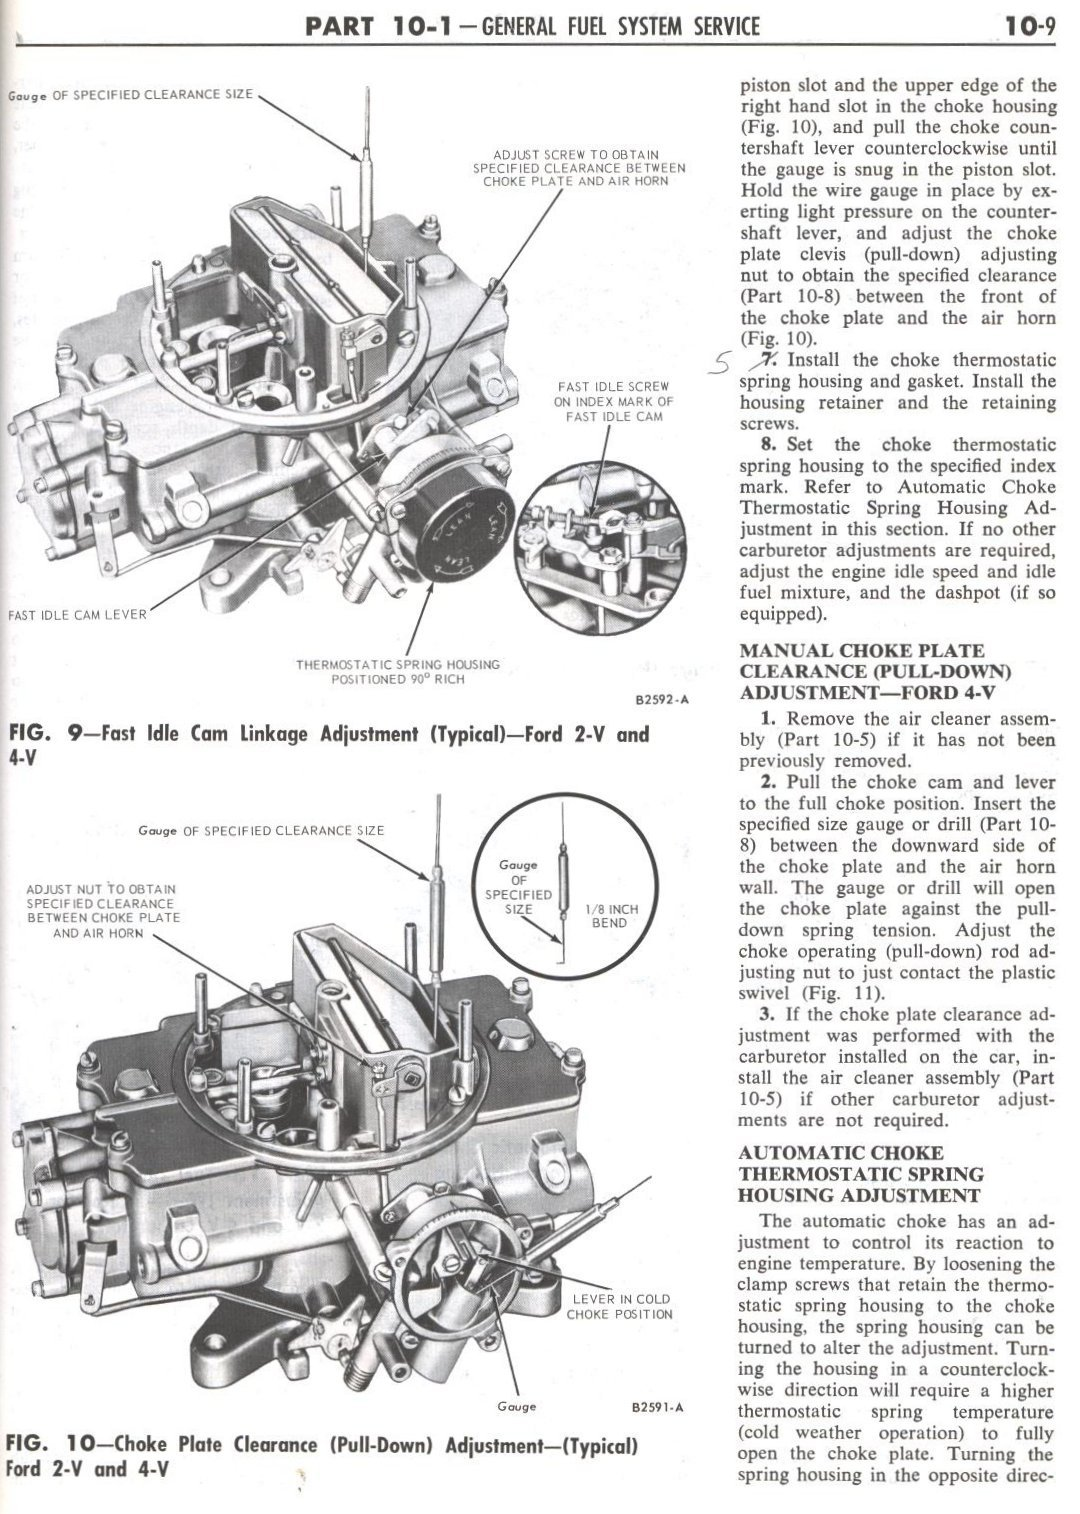 1965 Mustang Carburetor Diagram Trusted Wiring Diagram \u2022 Ford Inline 6  Crate Engine 1965 Ford 6 Cylinder Engine Diagram